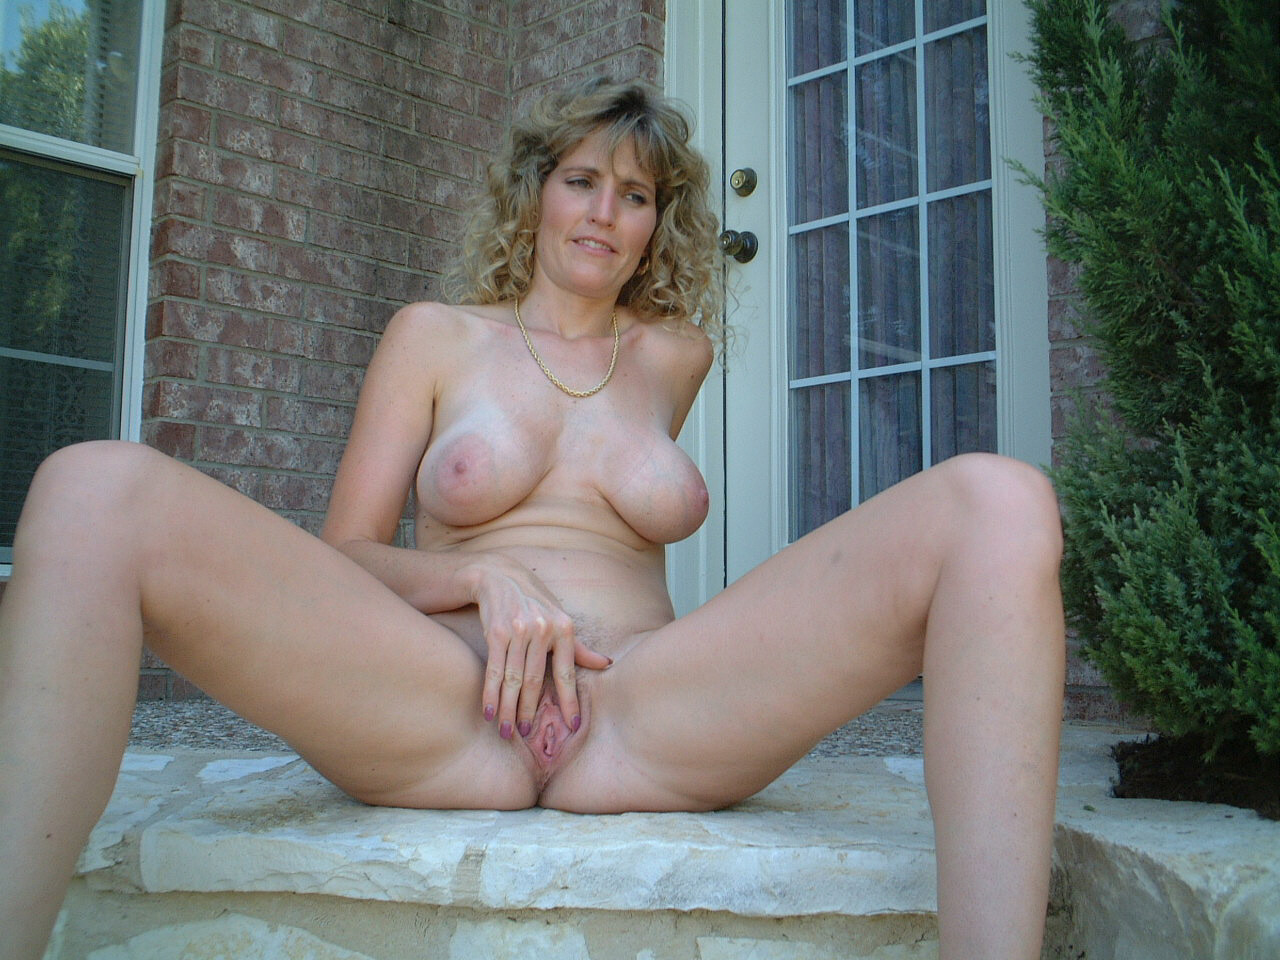 Have Mom nudist bilder thanks